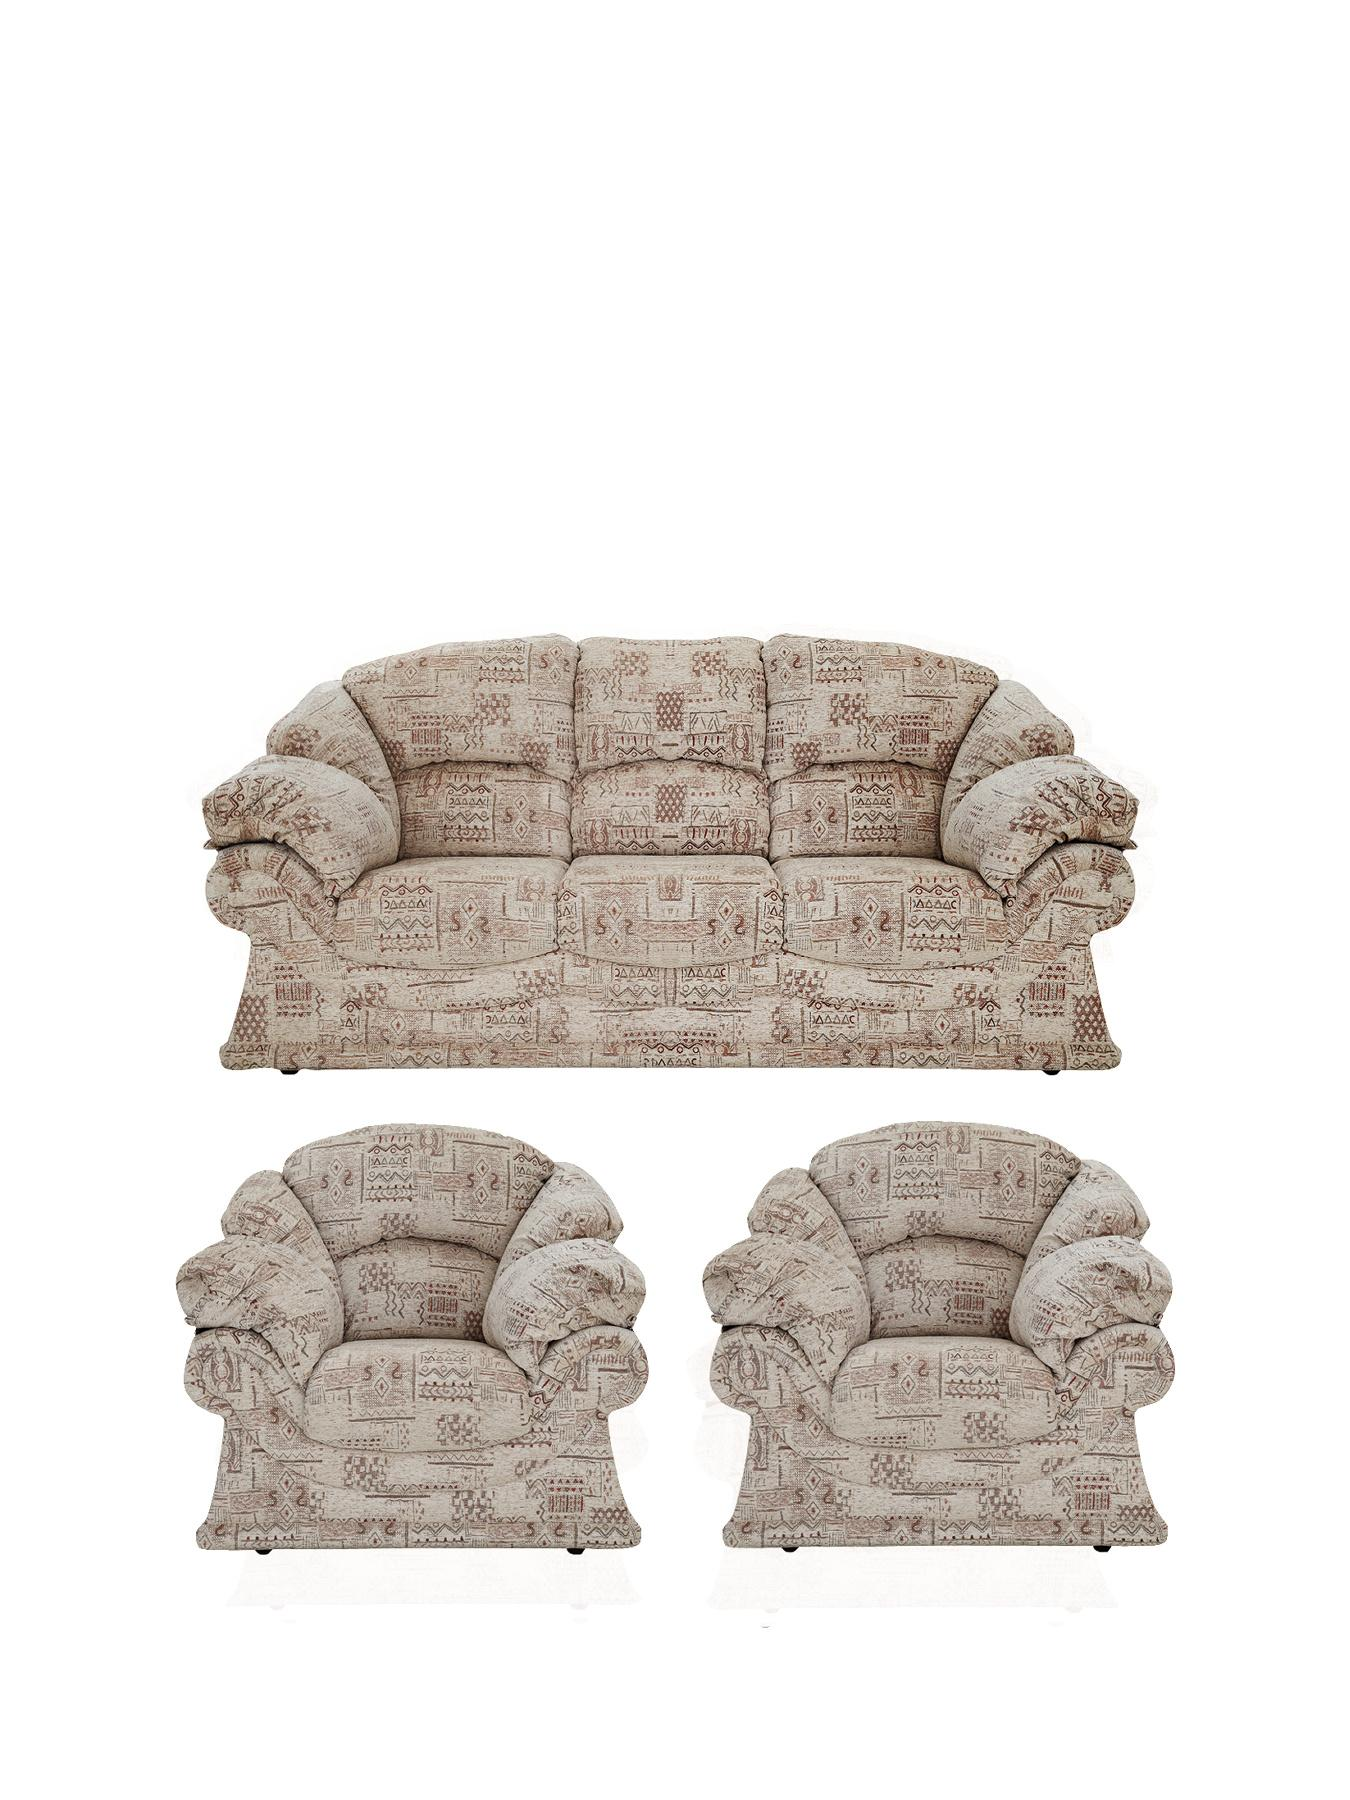 Harrow 3-Seater plus 2-Seater Fabric Sofa Set (Buy and SAVE!), Chocolate at Littlewoods Home Shopping